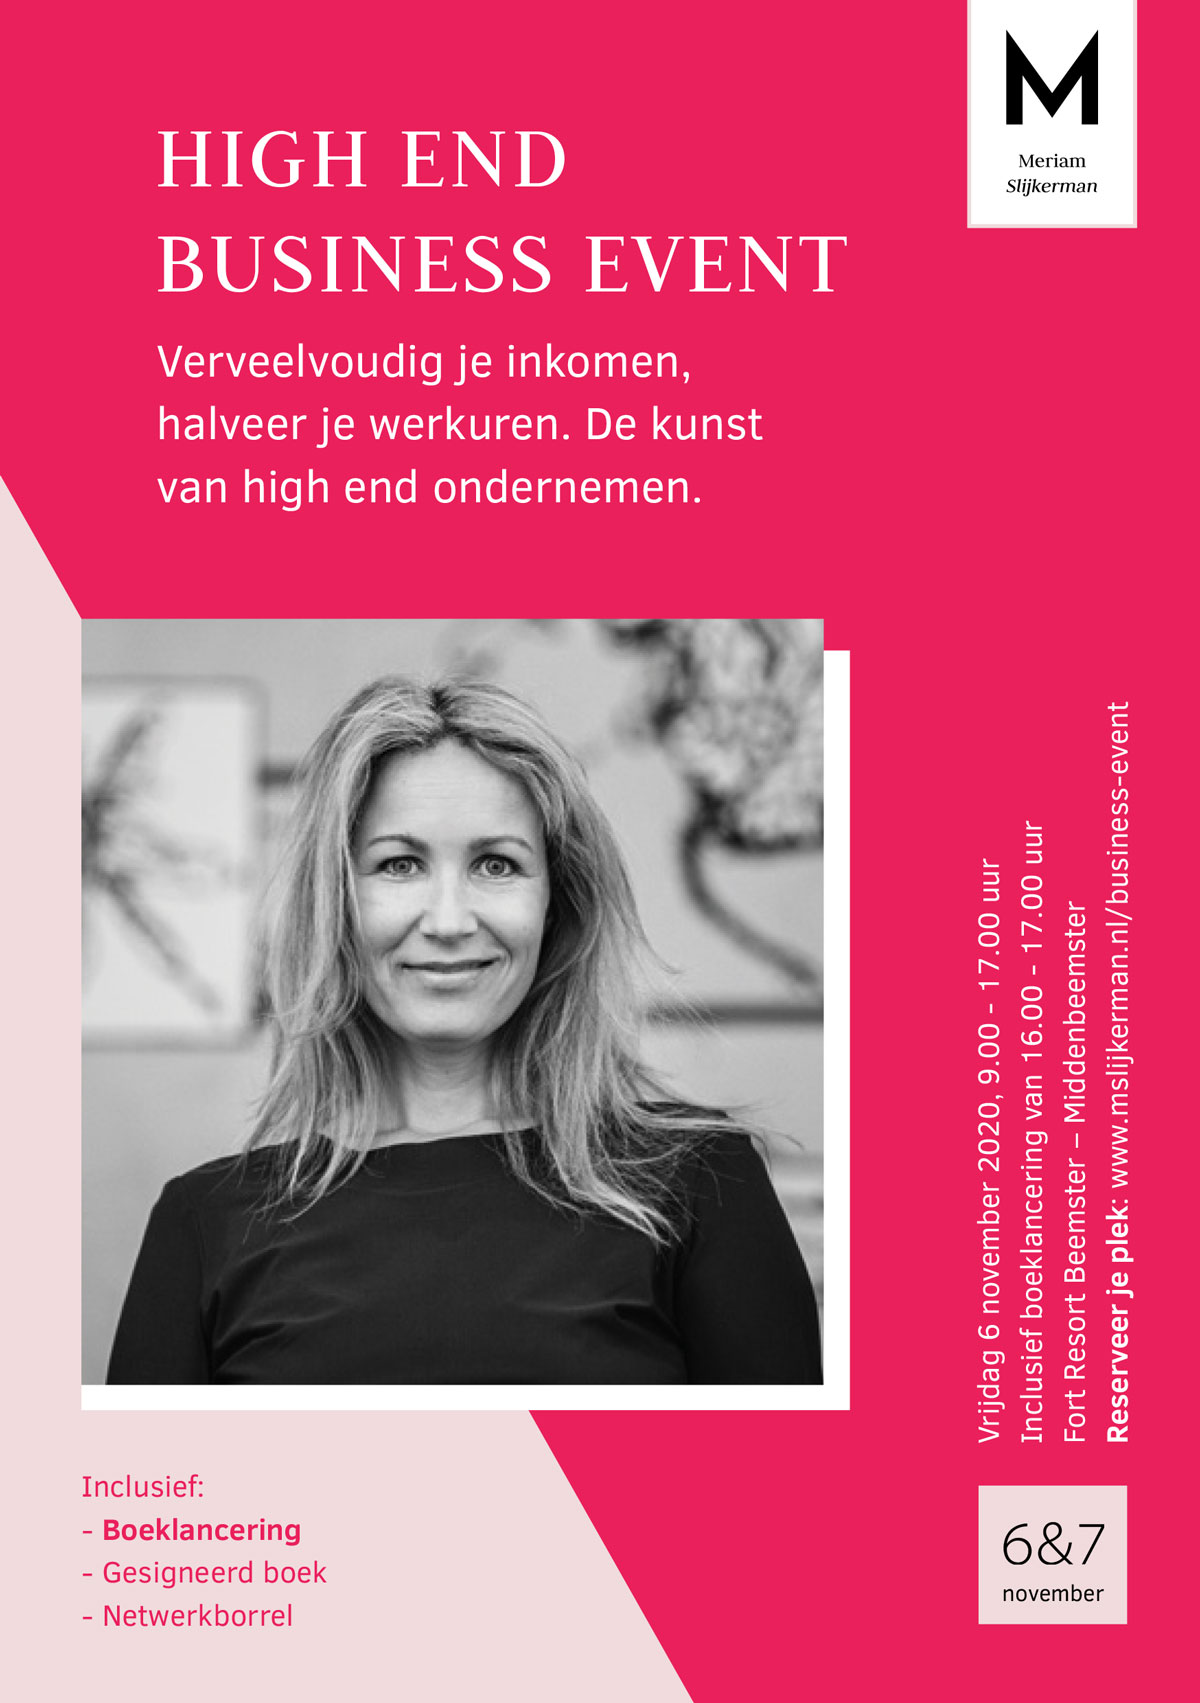 Flyer-Business-Event-2020-Meriam-Slijkerman-voorkant